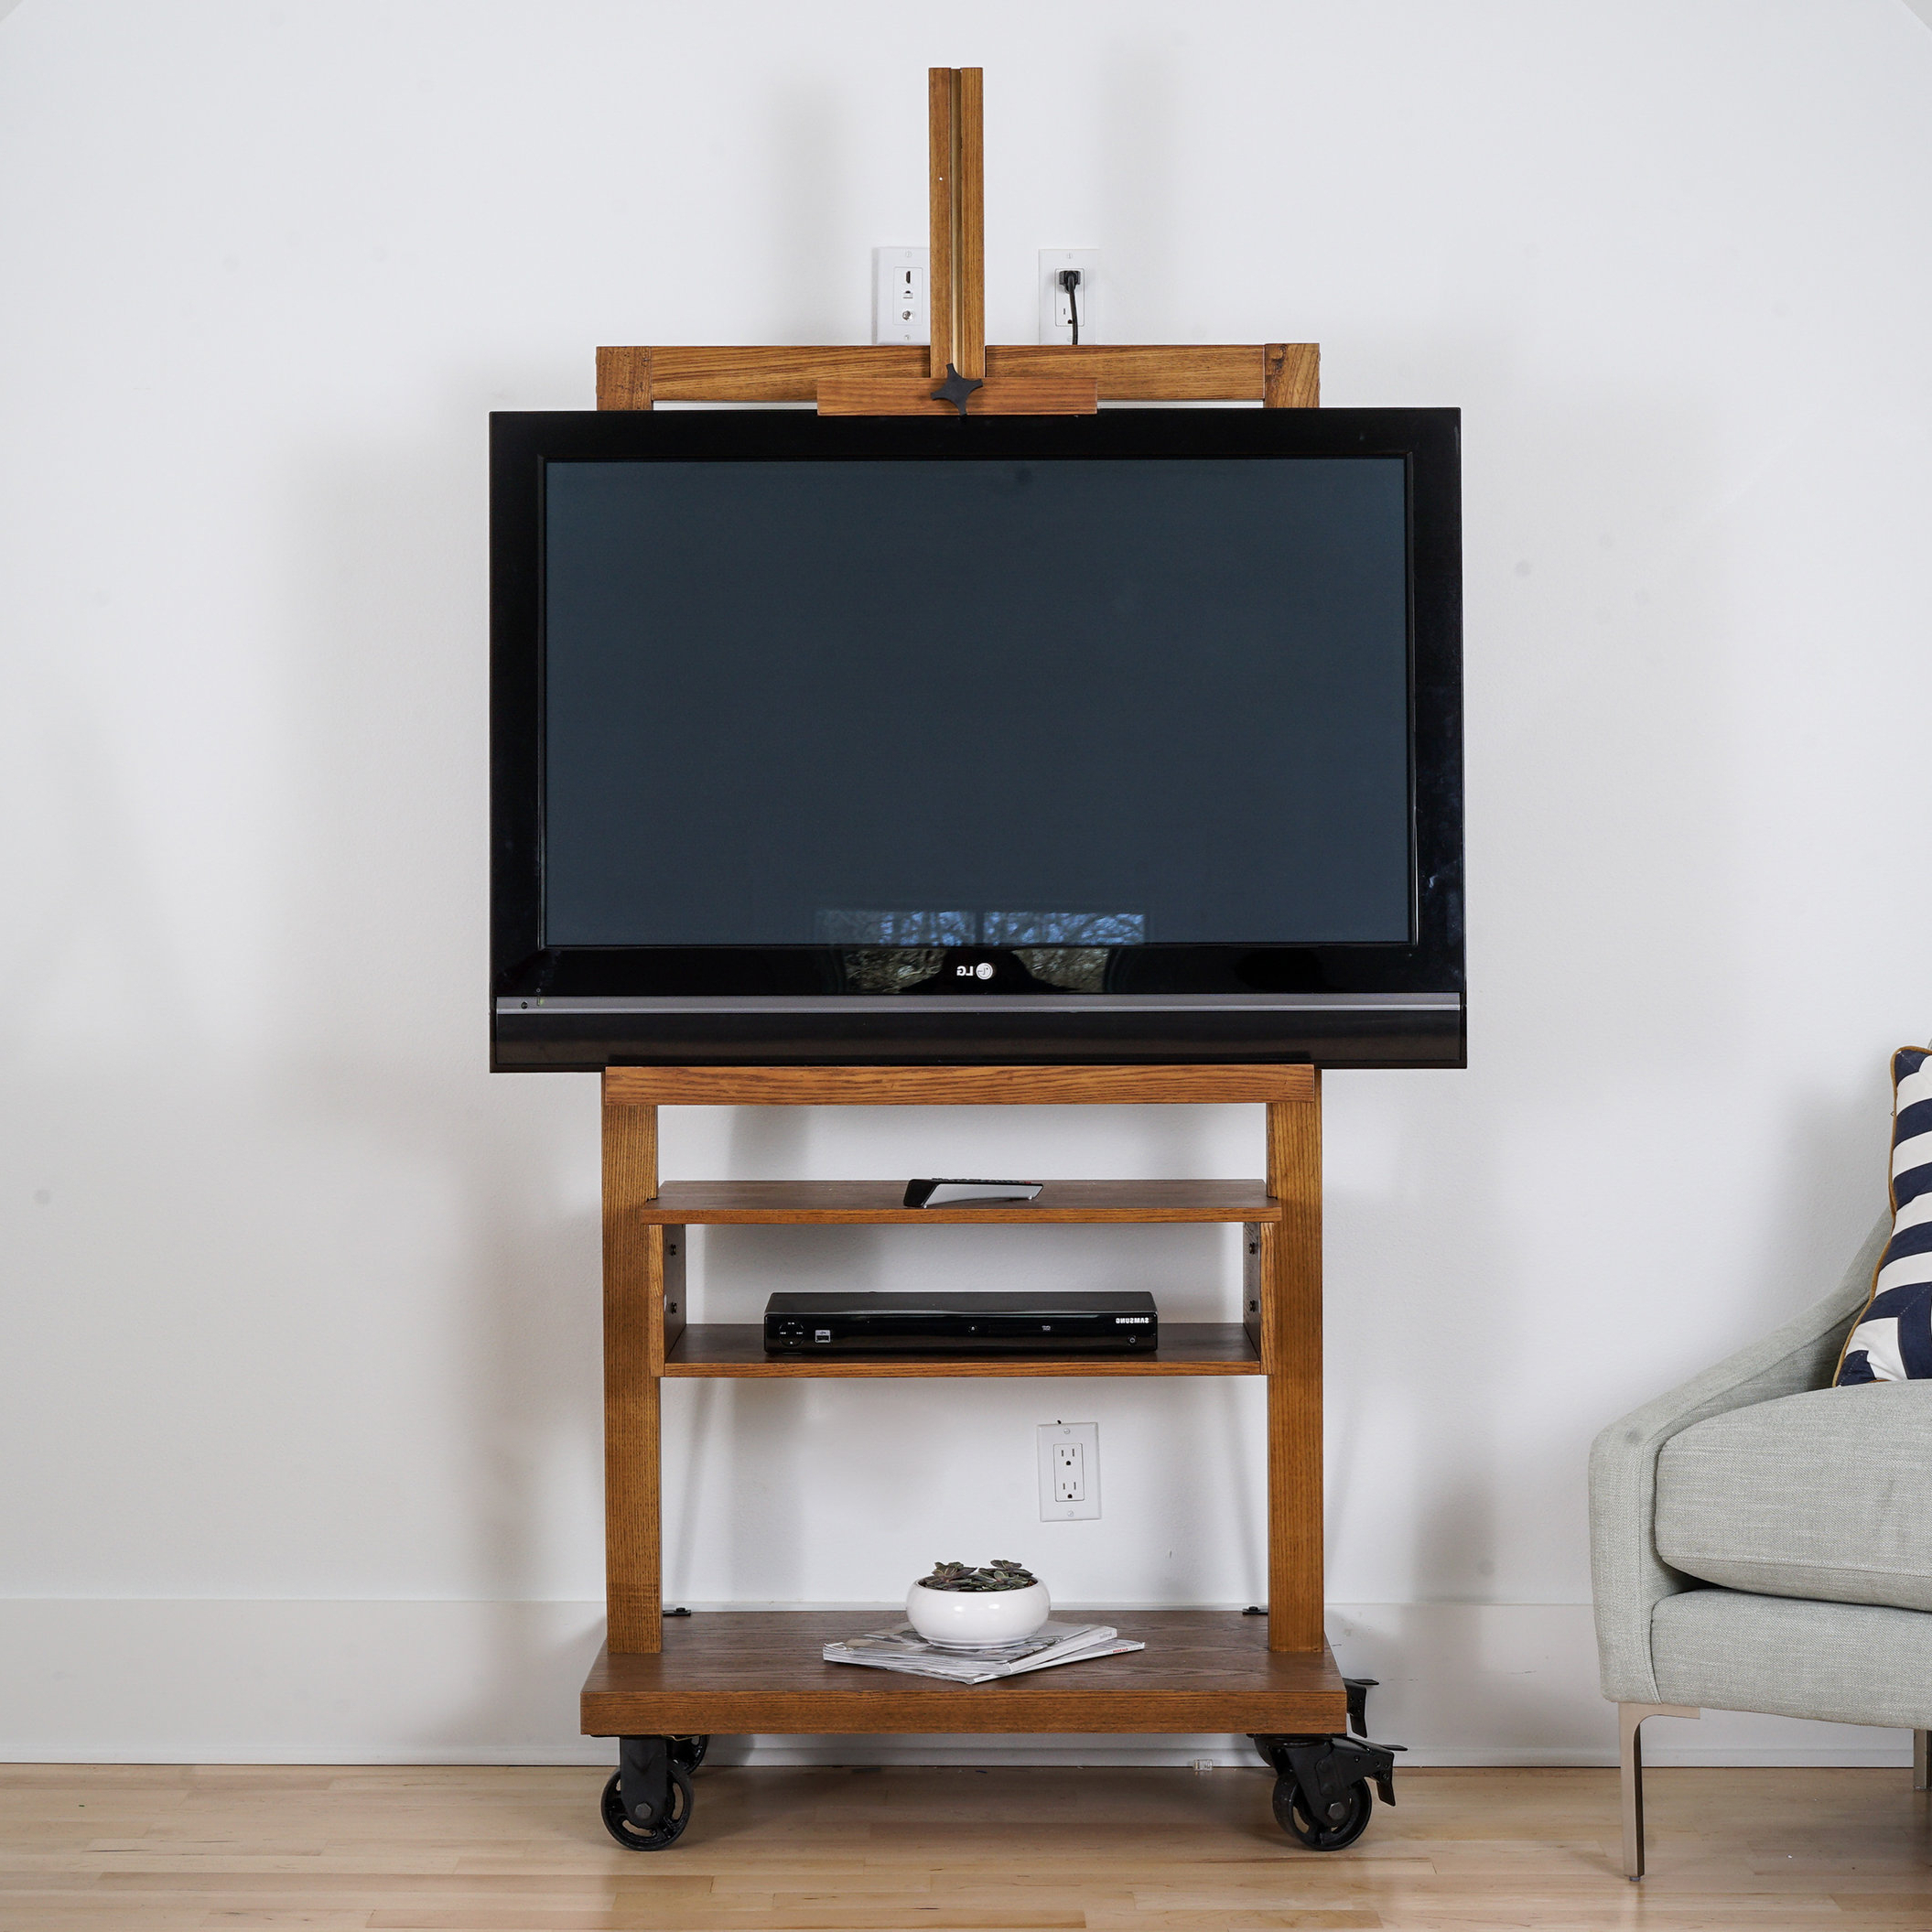 Tv Easel Stand Wheels (View 8 of 20)